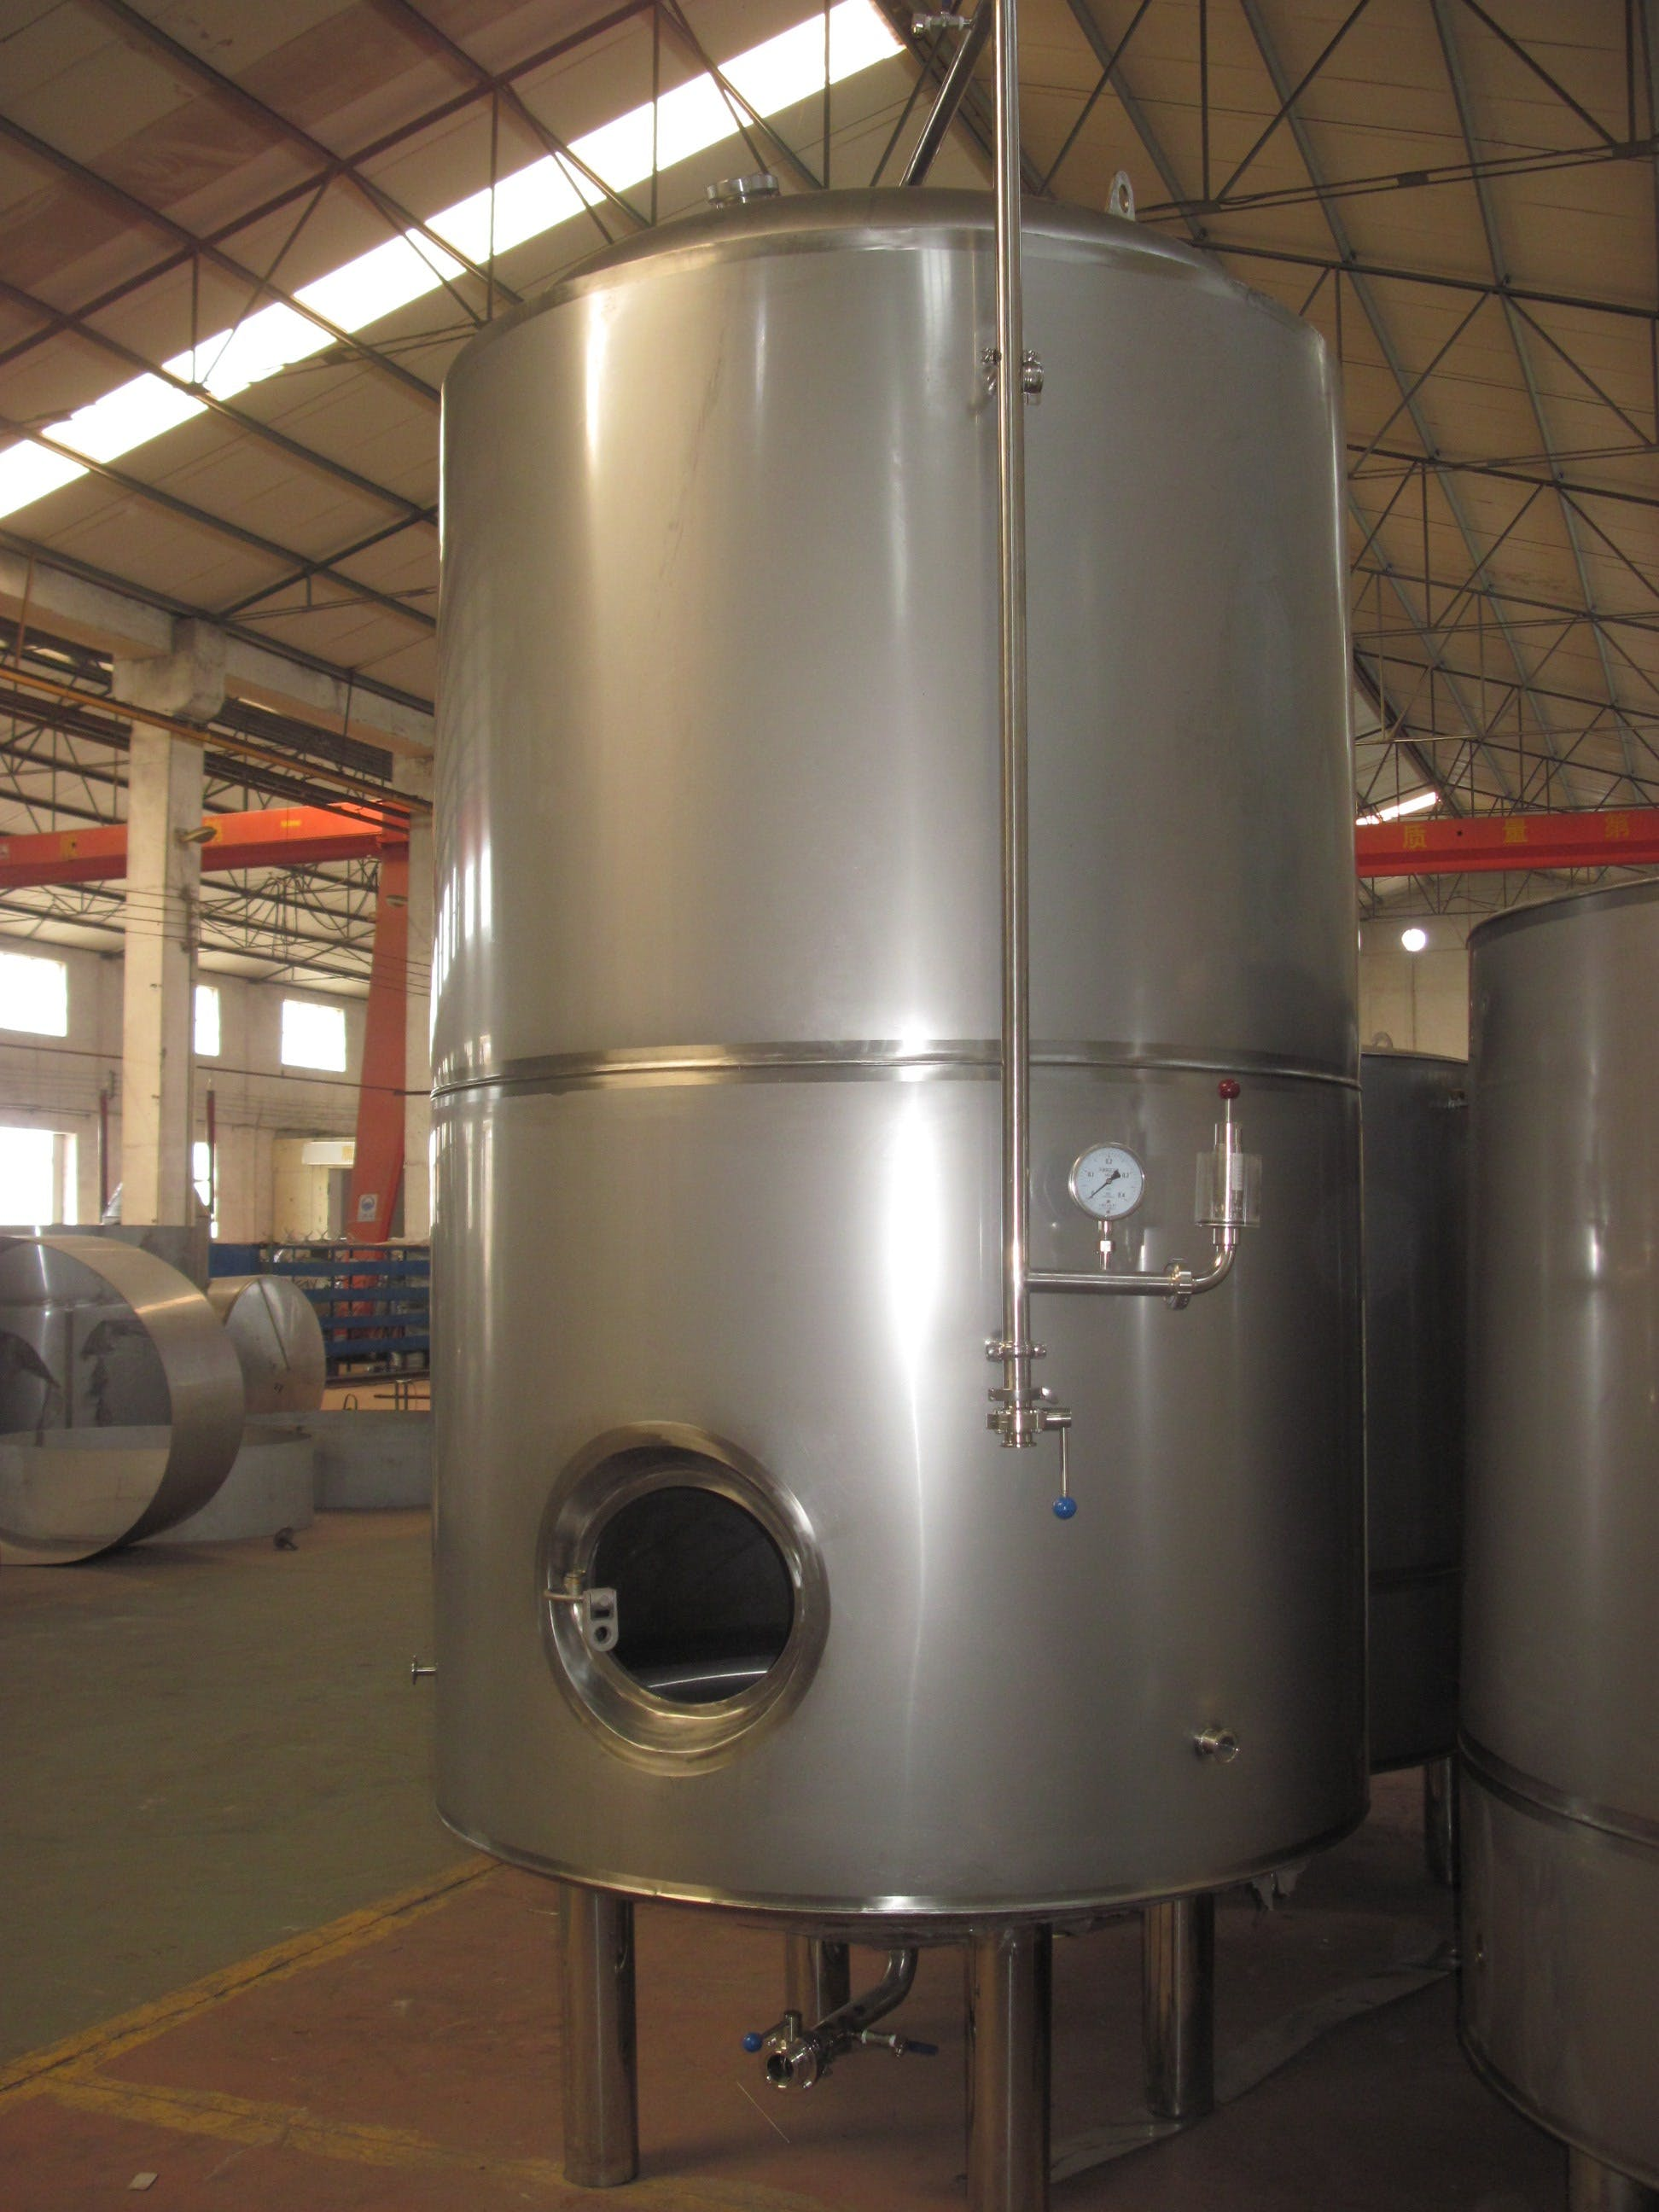 30 BBL Bright Beer Tank Brewery tank sold by Asia Pacific Packaging